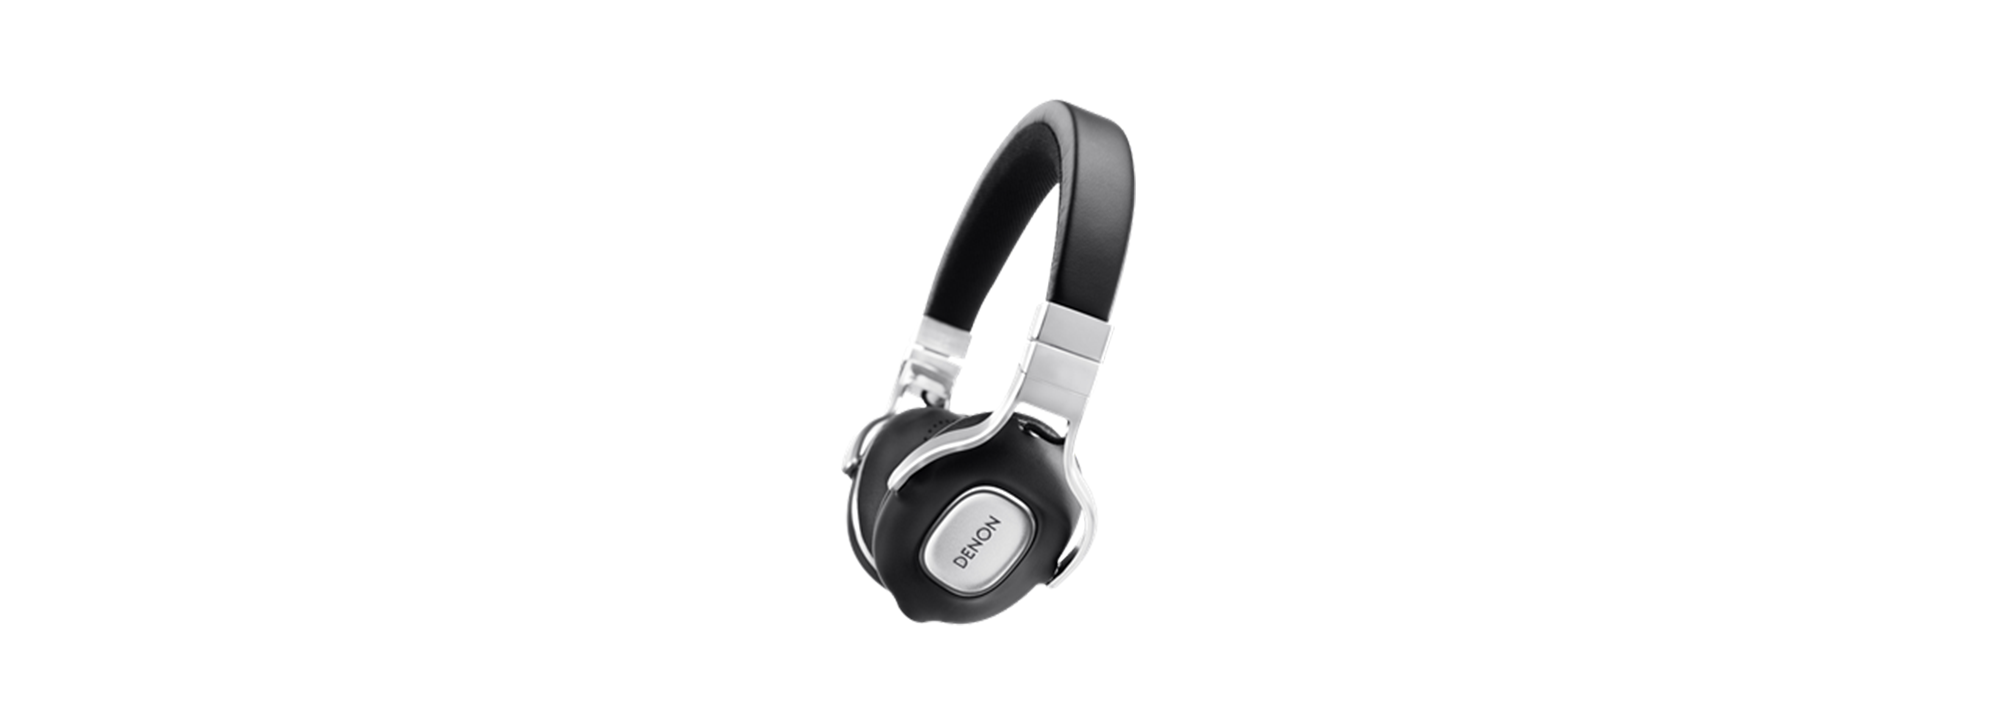 DENON AH-MM300 High Quality On-Ear Headphone.